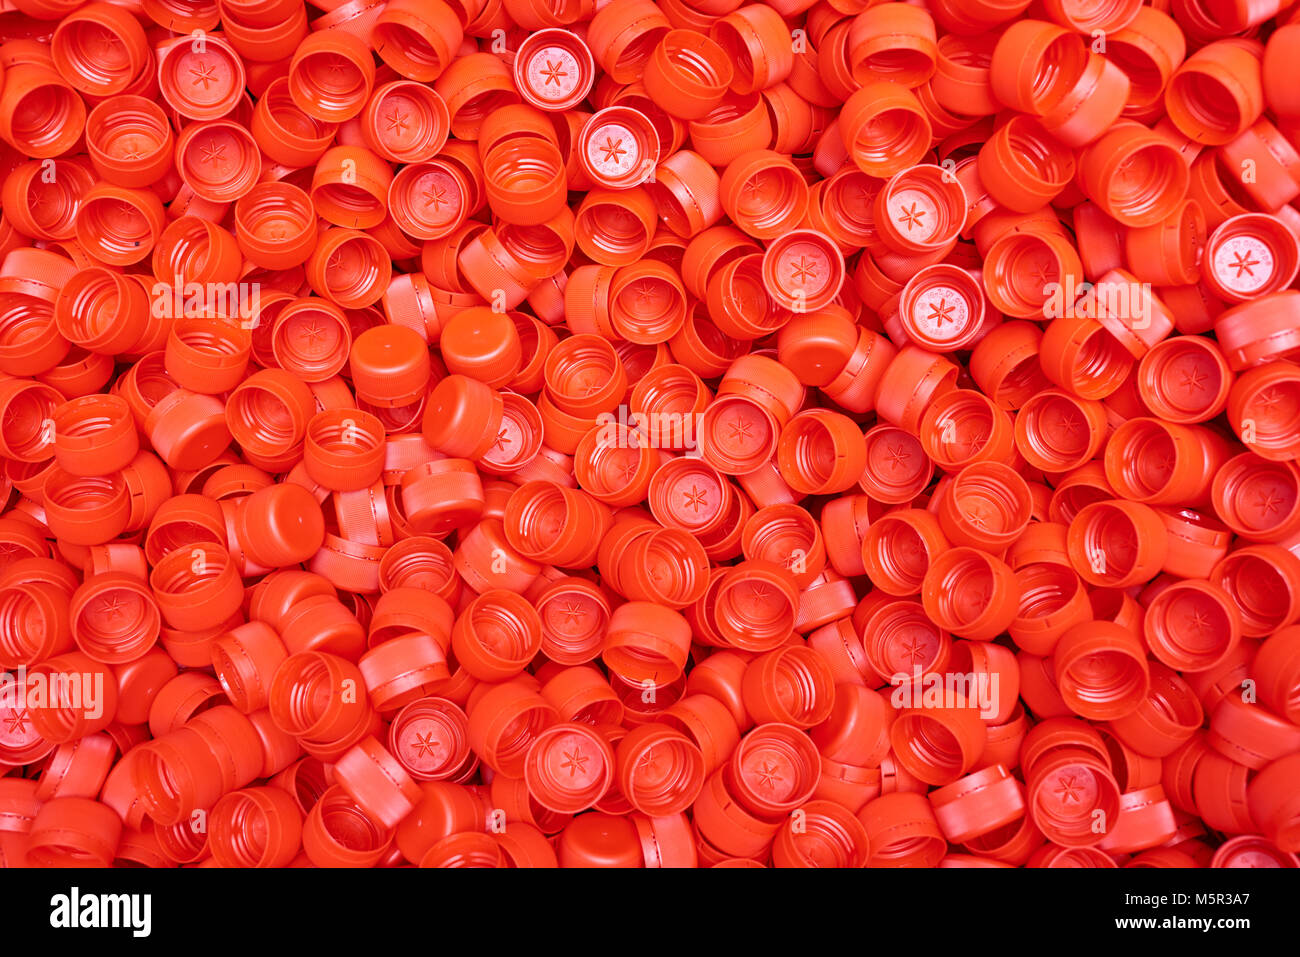 Composition with red plastic bottle caps illuminated with sunbeams, close-up shot - Stock Image